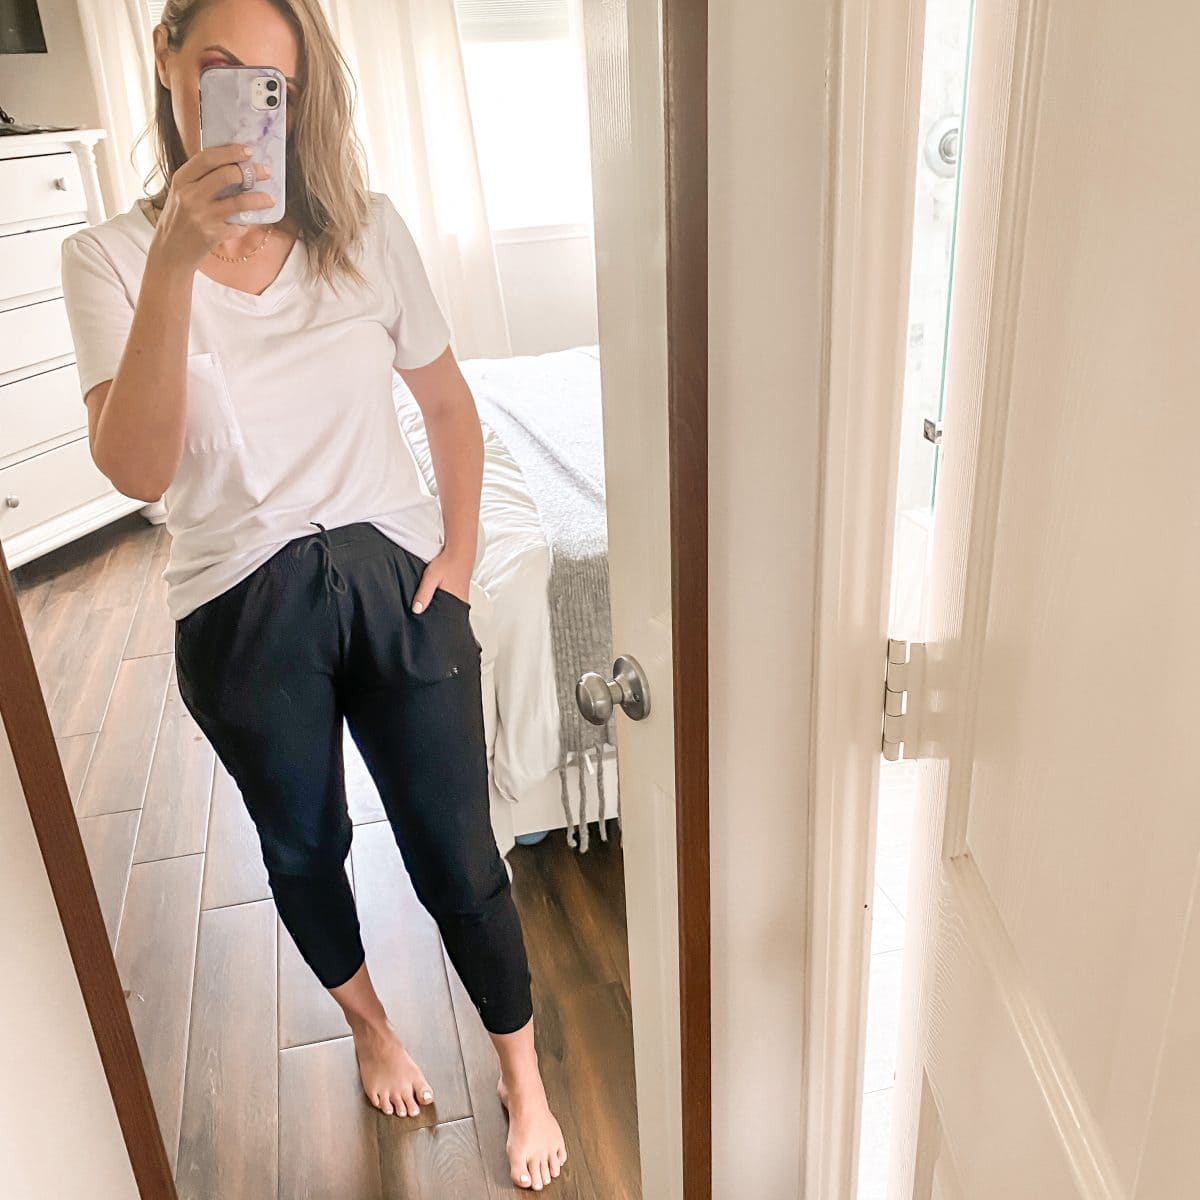 Amazon comfy clothes and athleisure - black joggers and white slouchy v-neck tee from Amazon